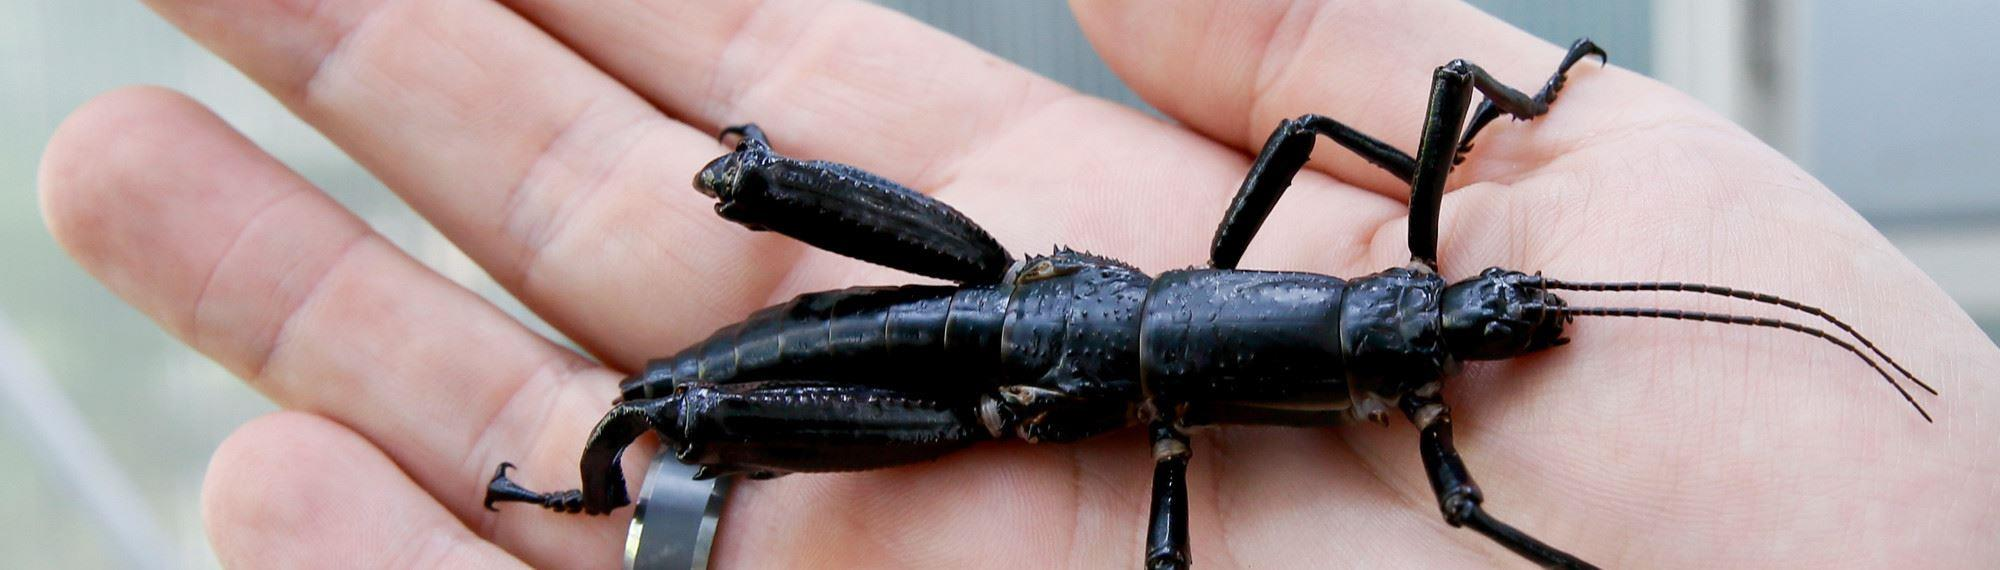 Lord Howe Island Stick Insect on a persons hand. The insect has six legs, a long black body and two antennas on its head.